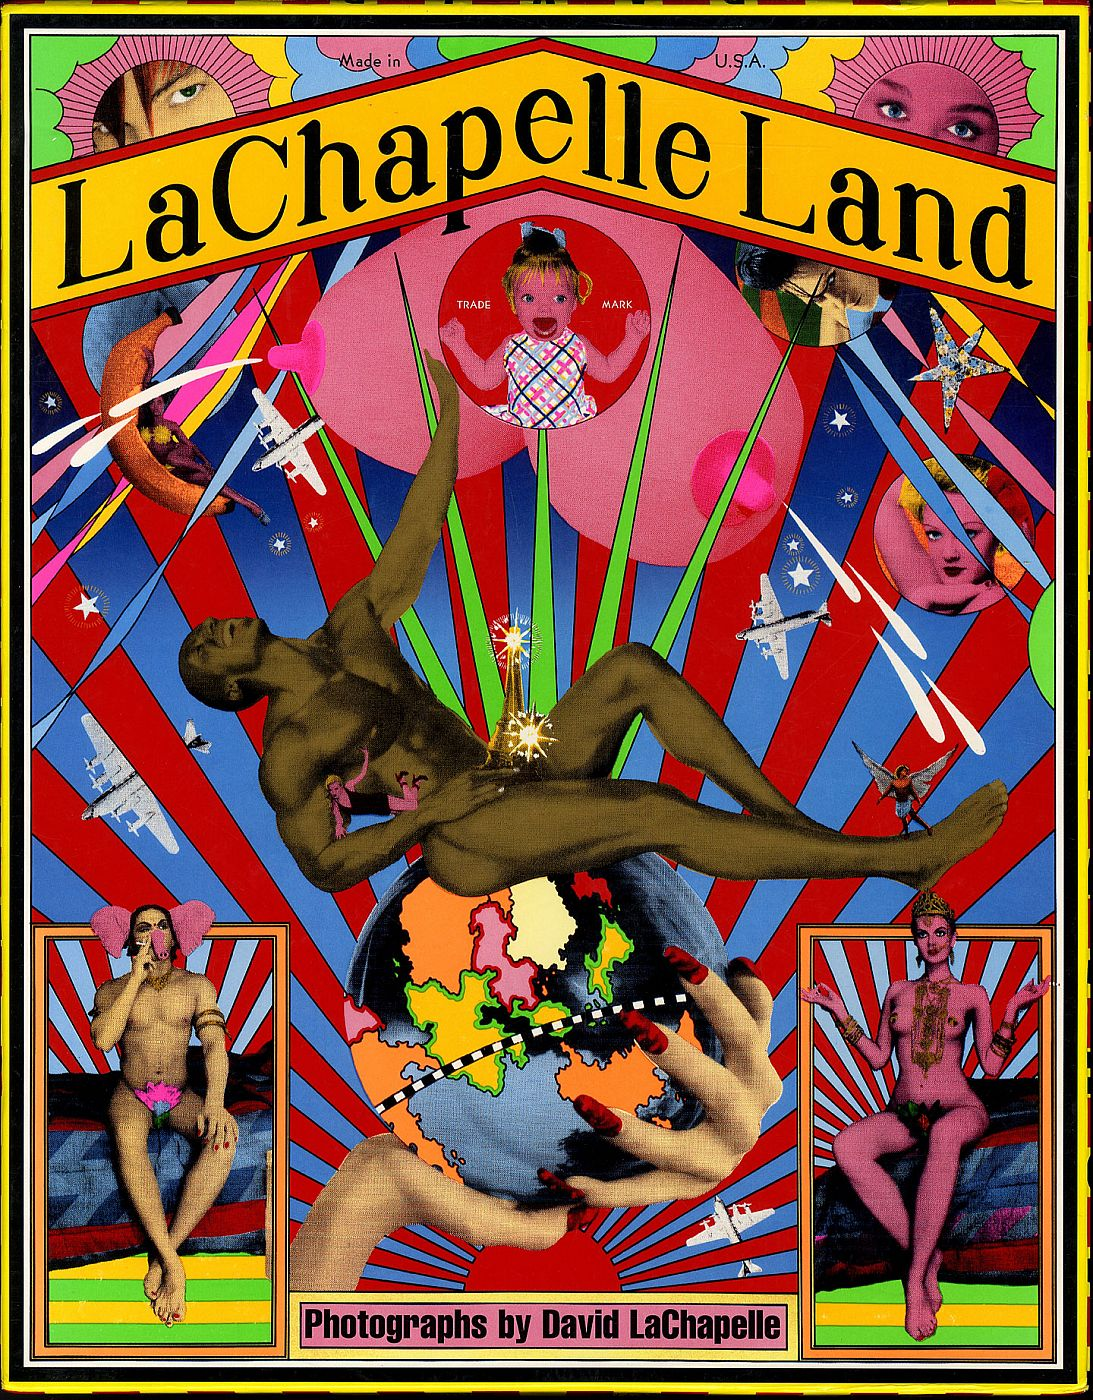 LaChapelle Land: Photographs by David LaChapelle (First Edition) [SIGNED]